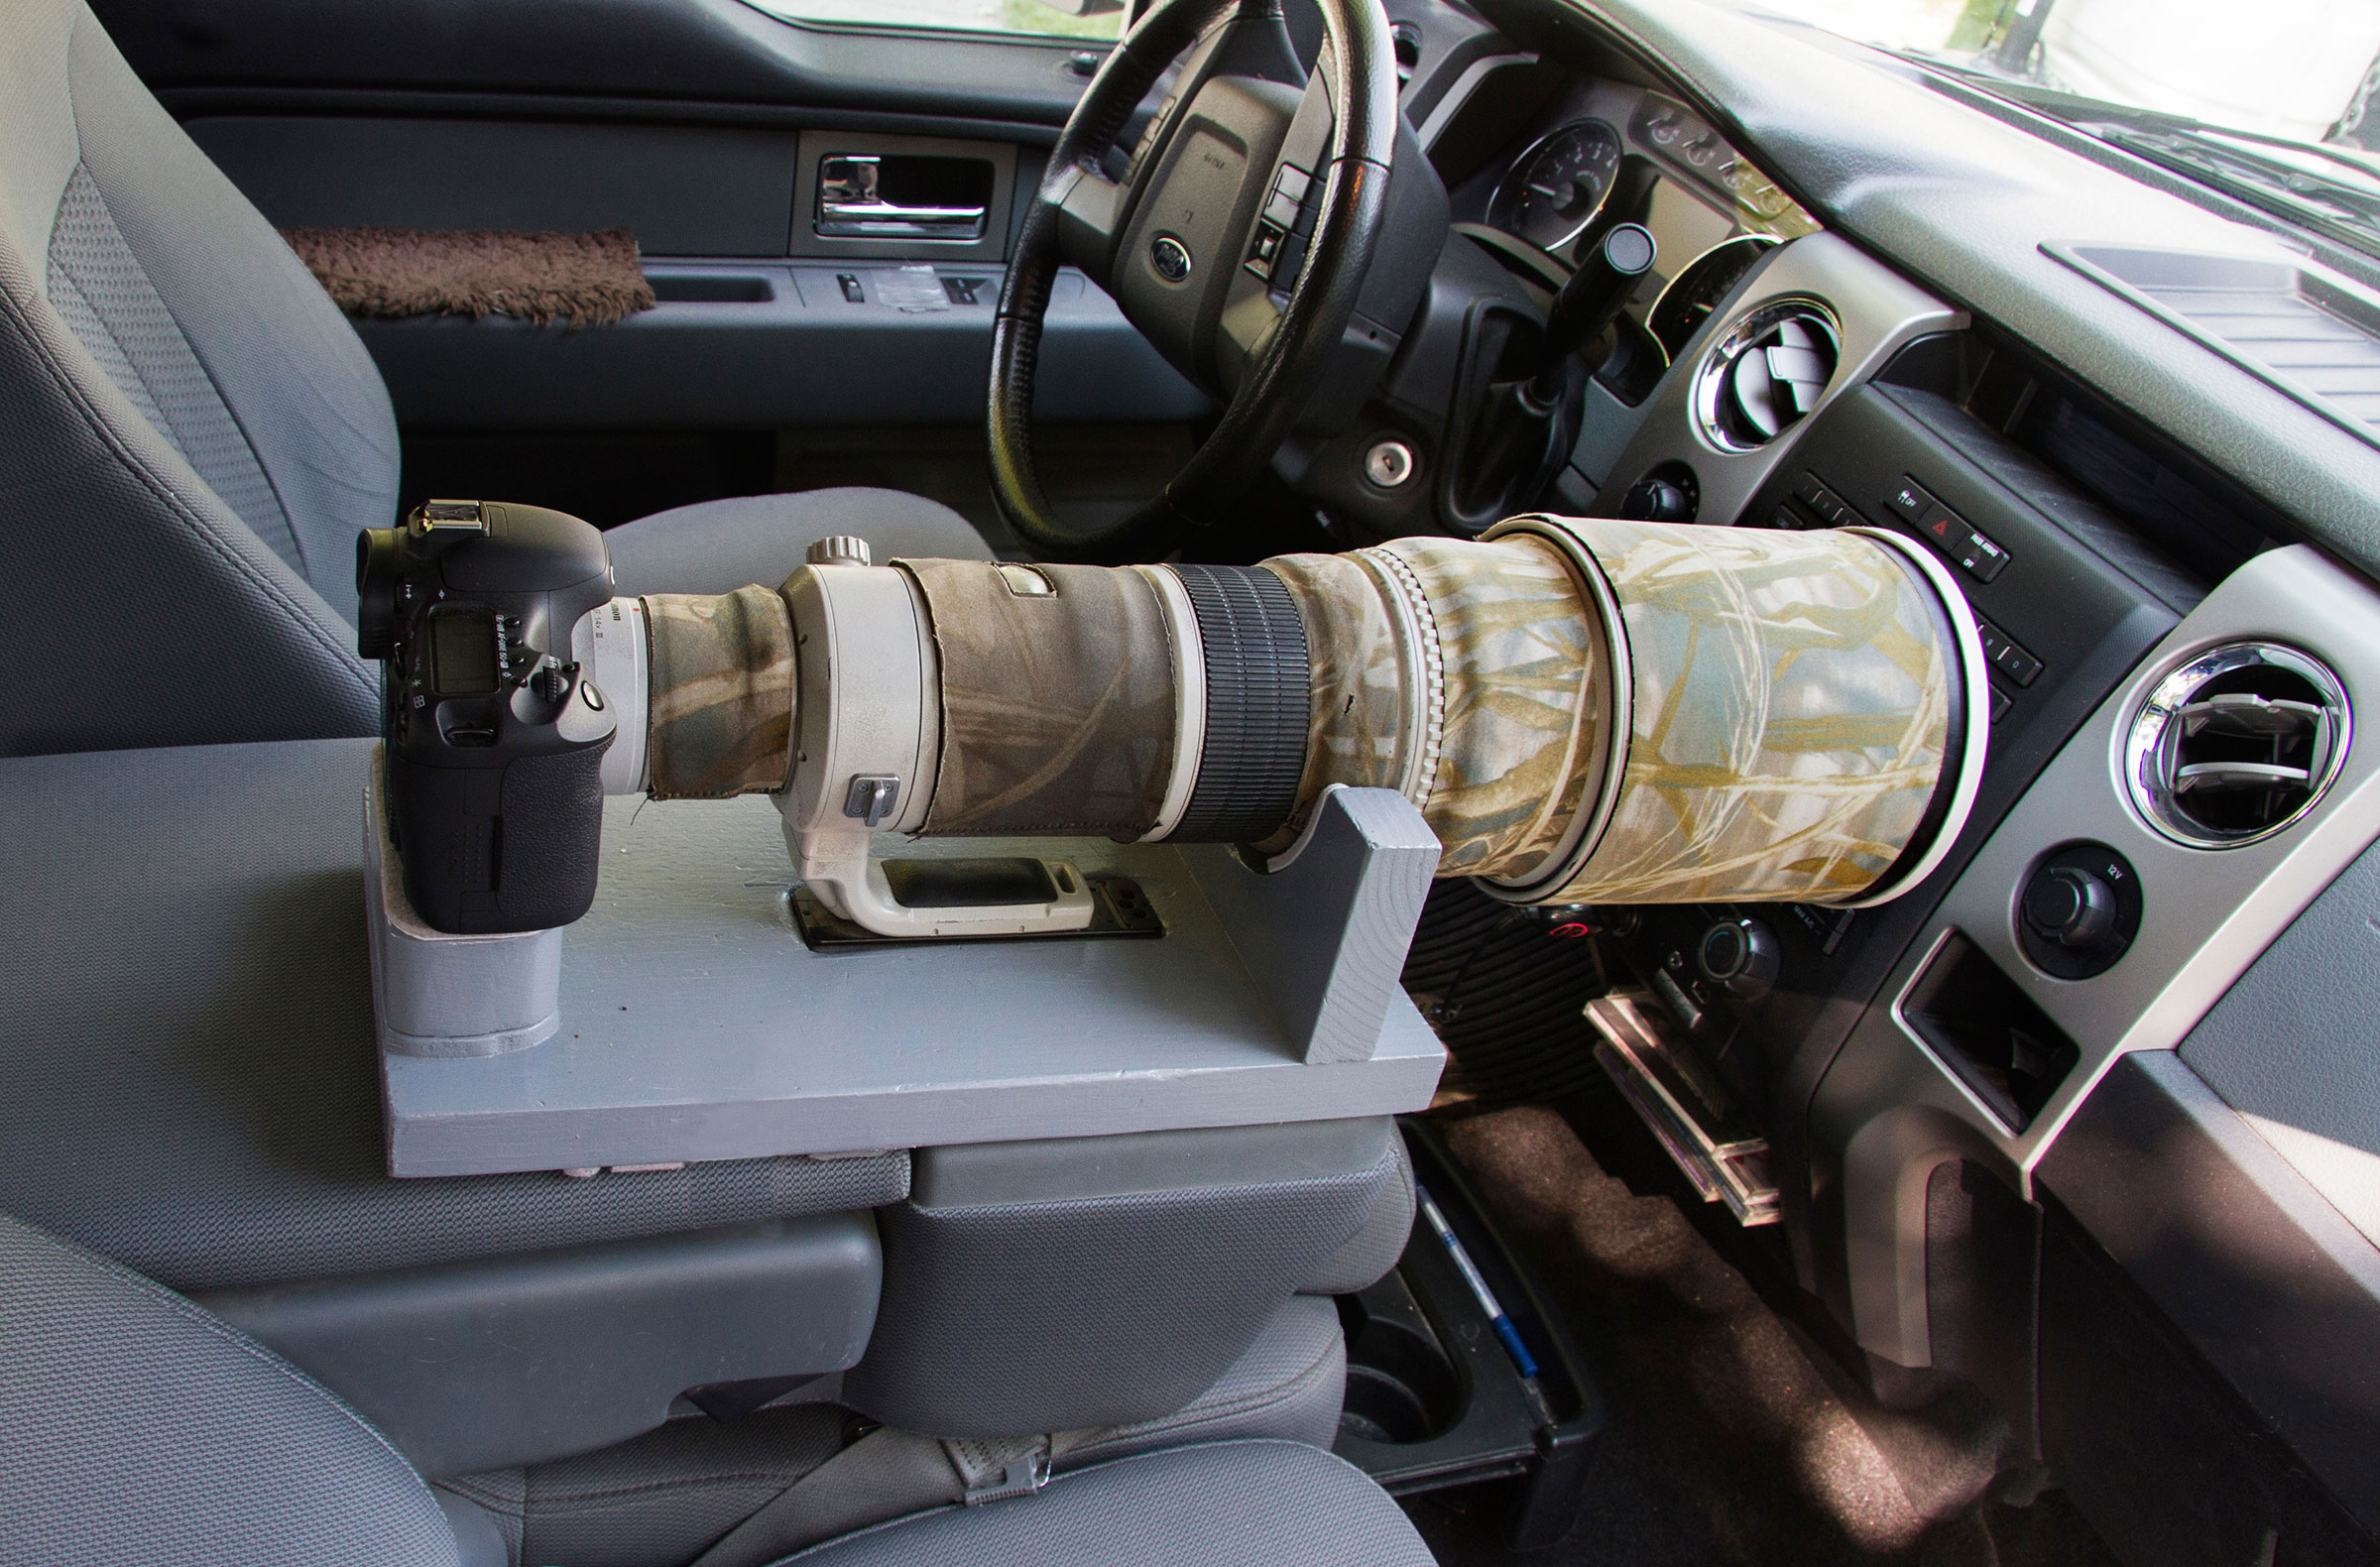 A DIY lens caddy for the center console keeps your setup secure while driving. Ron Dudley